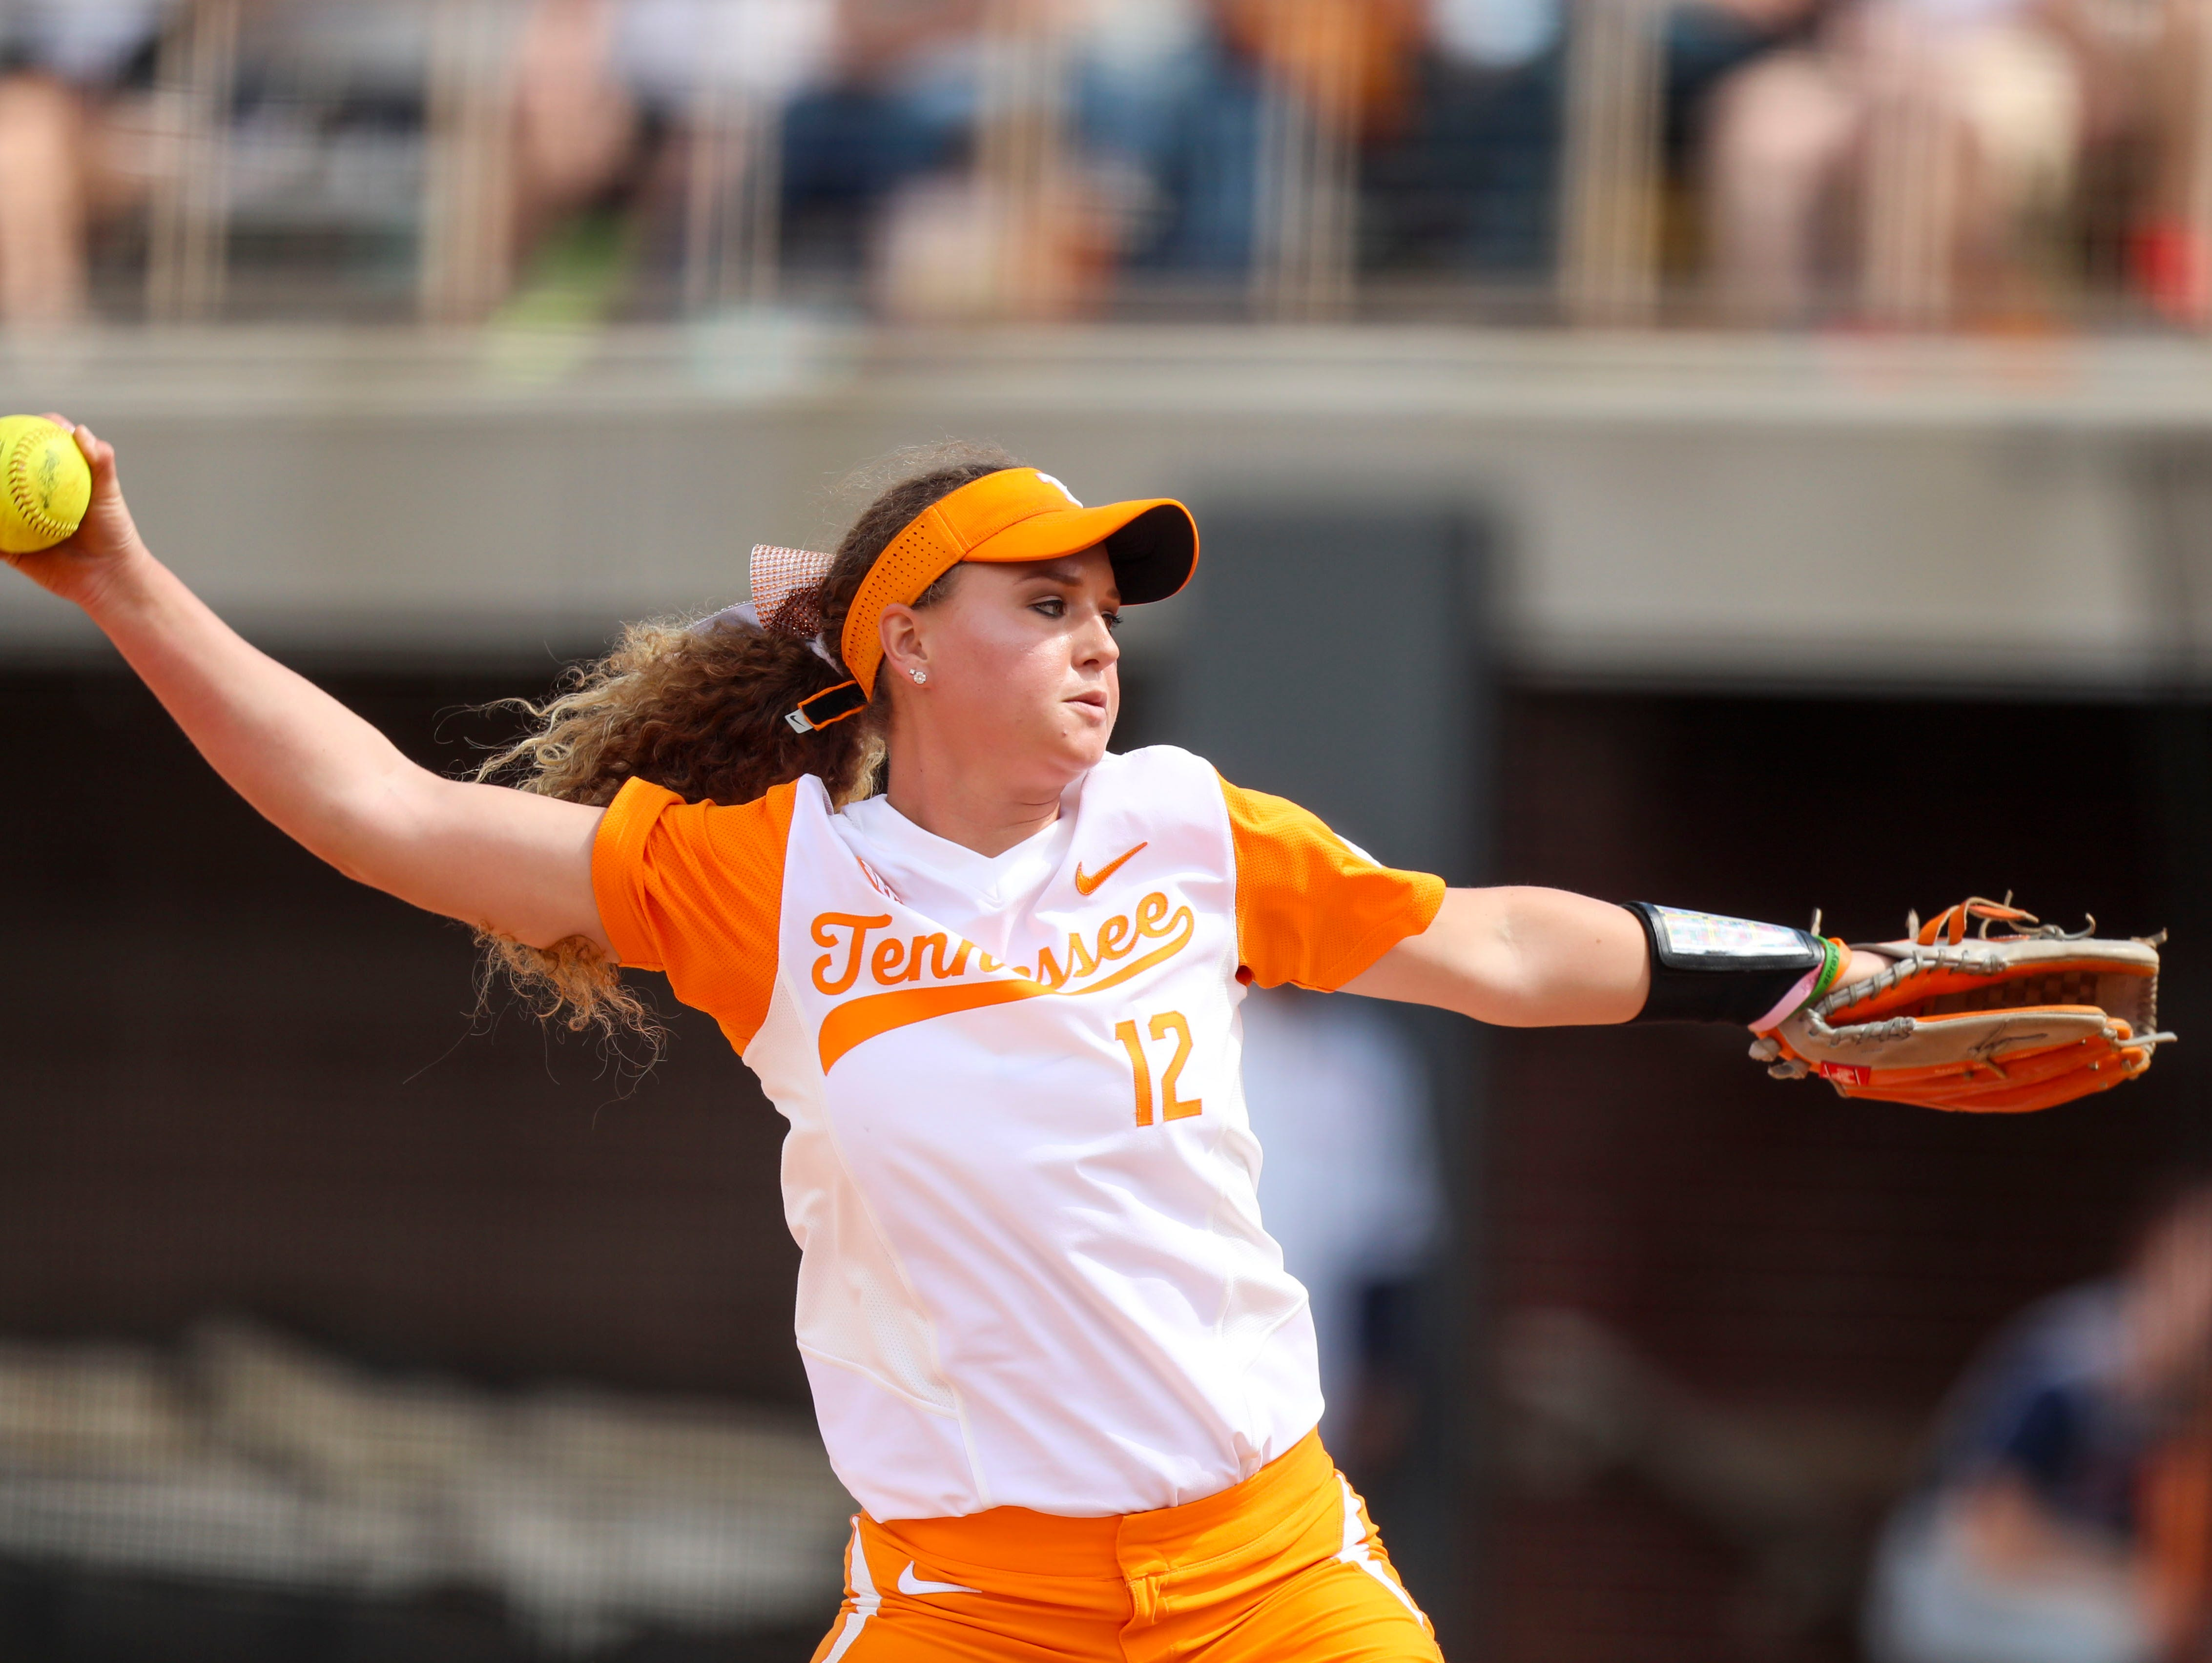 Tennessee pitcher Caylan threw six innings of scoreless relief to help the Vols beat N.C. State 6-1 on Sunday at Sherri Parker Lee Stadium.